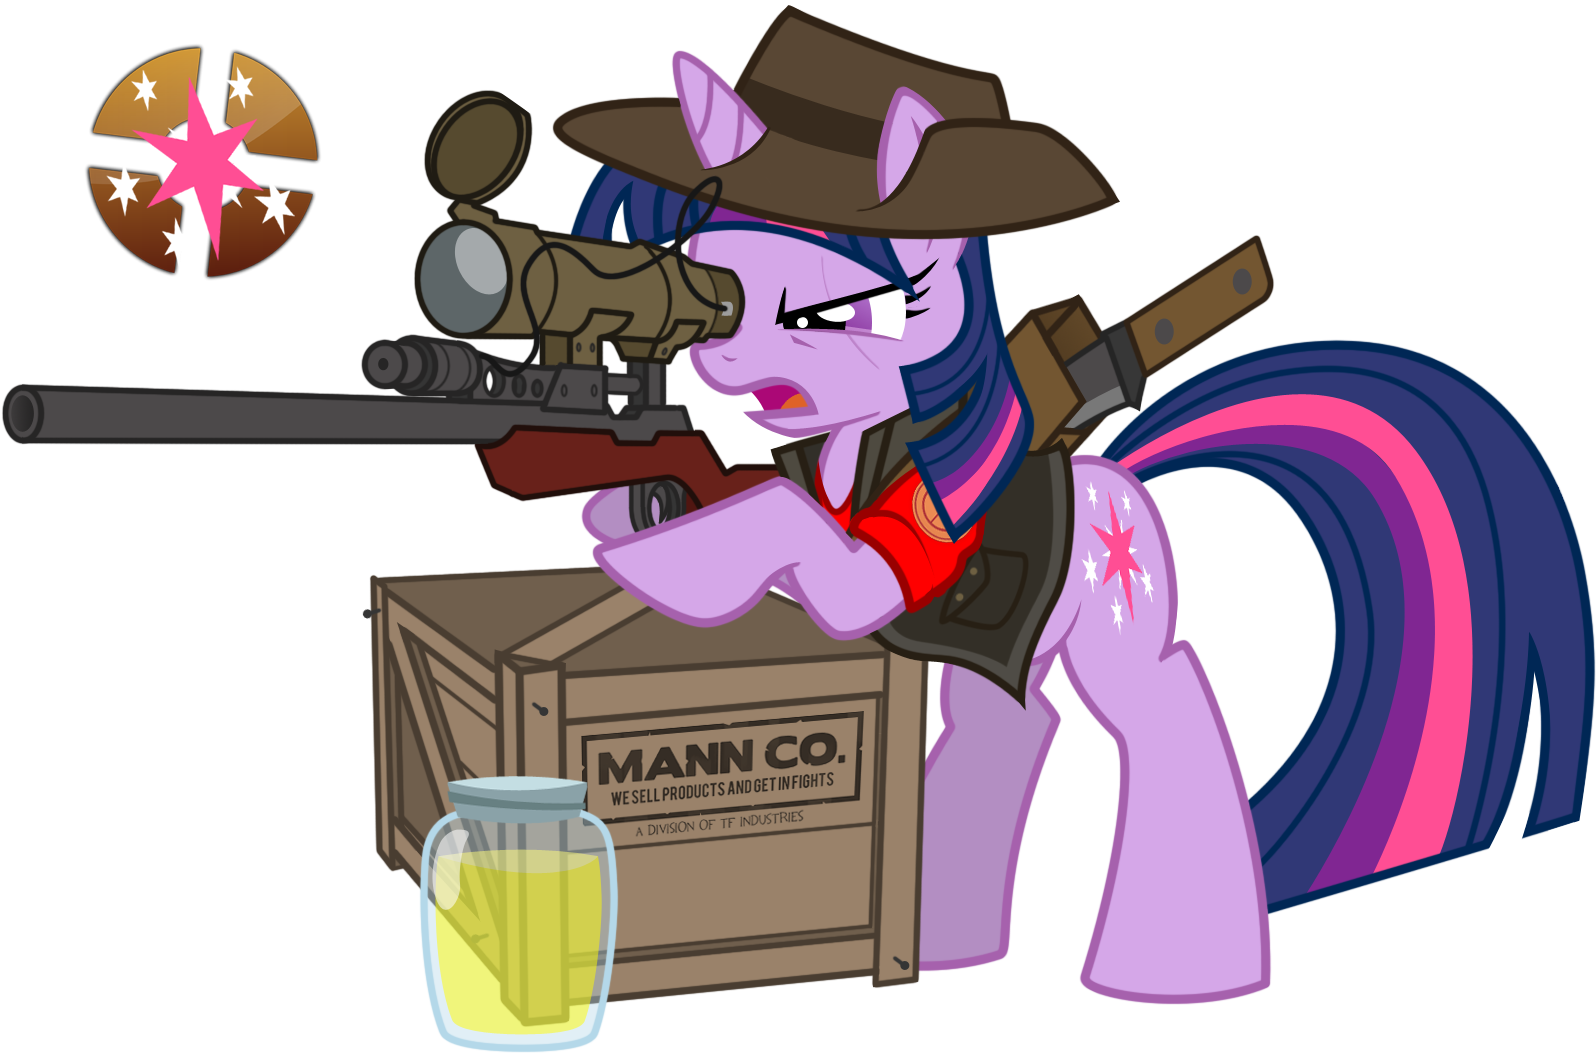 e621 box cosplay cutie_mark equine female feral friendship_is_magic gun hat horn jar jarate knife mammal my_little_pony ranged_weapon rifle sniper sniper_(team_fortress_2) sniper_rifle team_fortress_2 twilight_sparkle_(mlp) unicorn video_games weapon